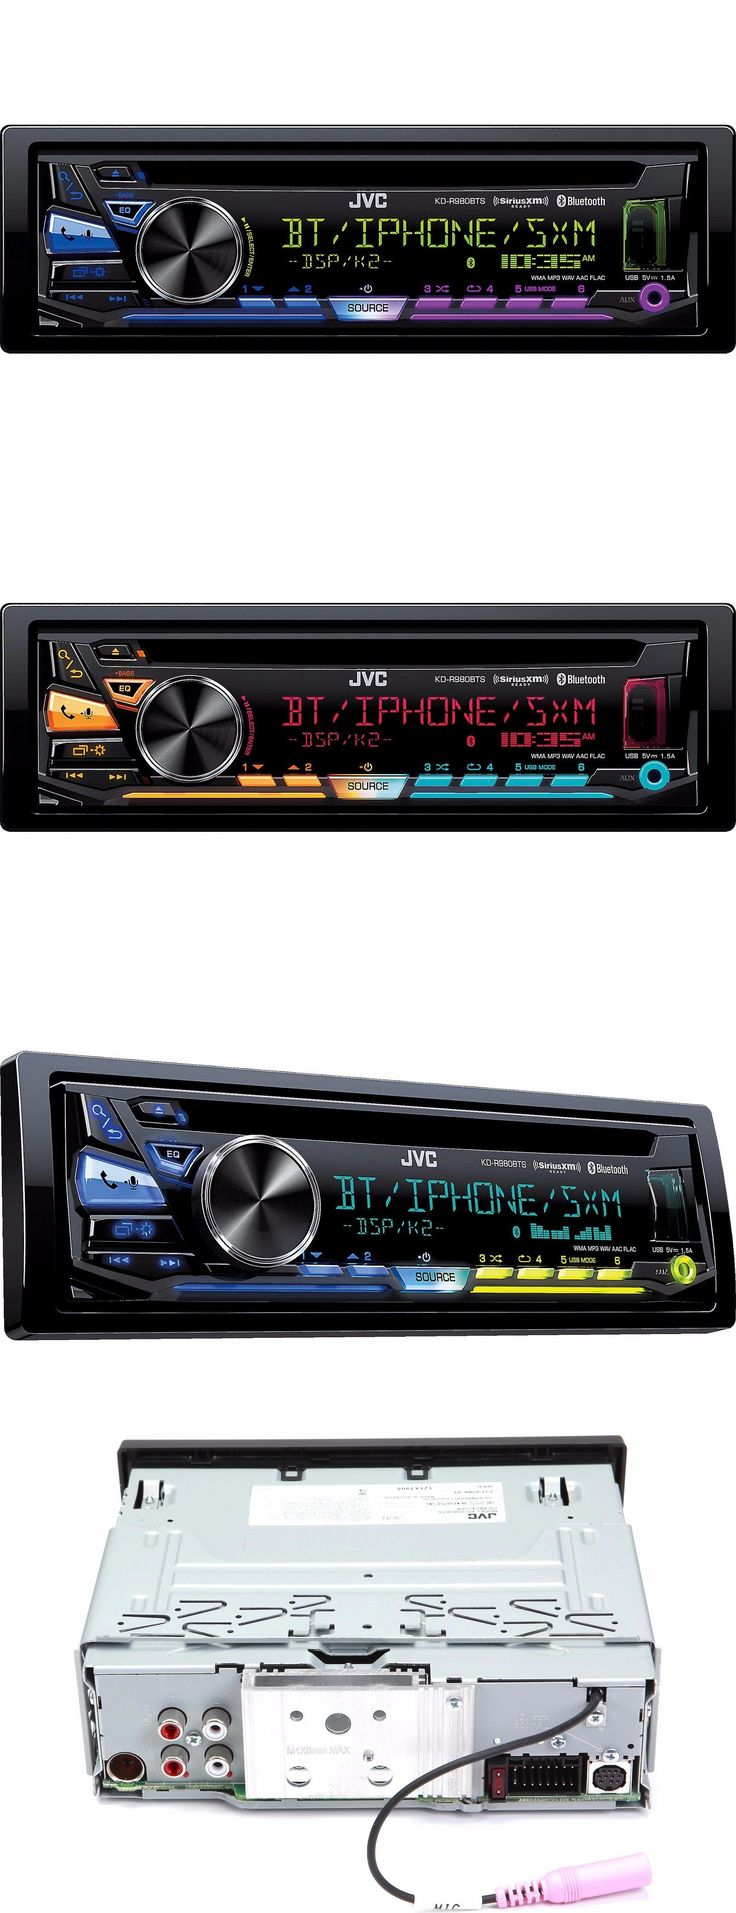 Vehicle Electronics And GPS: Jvc 1 Din Car Stereo Cd Player Receiver With Bluetooth Usb Aux Siriusxm Ready -> BUY IT NOW ONLY: $87.36 on eBay!